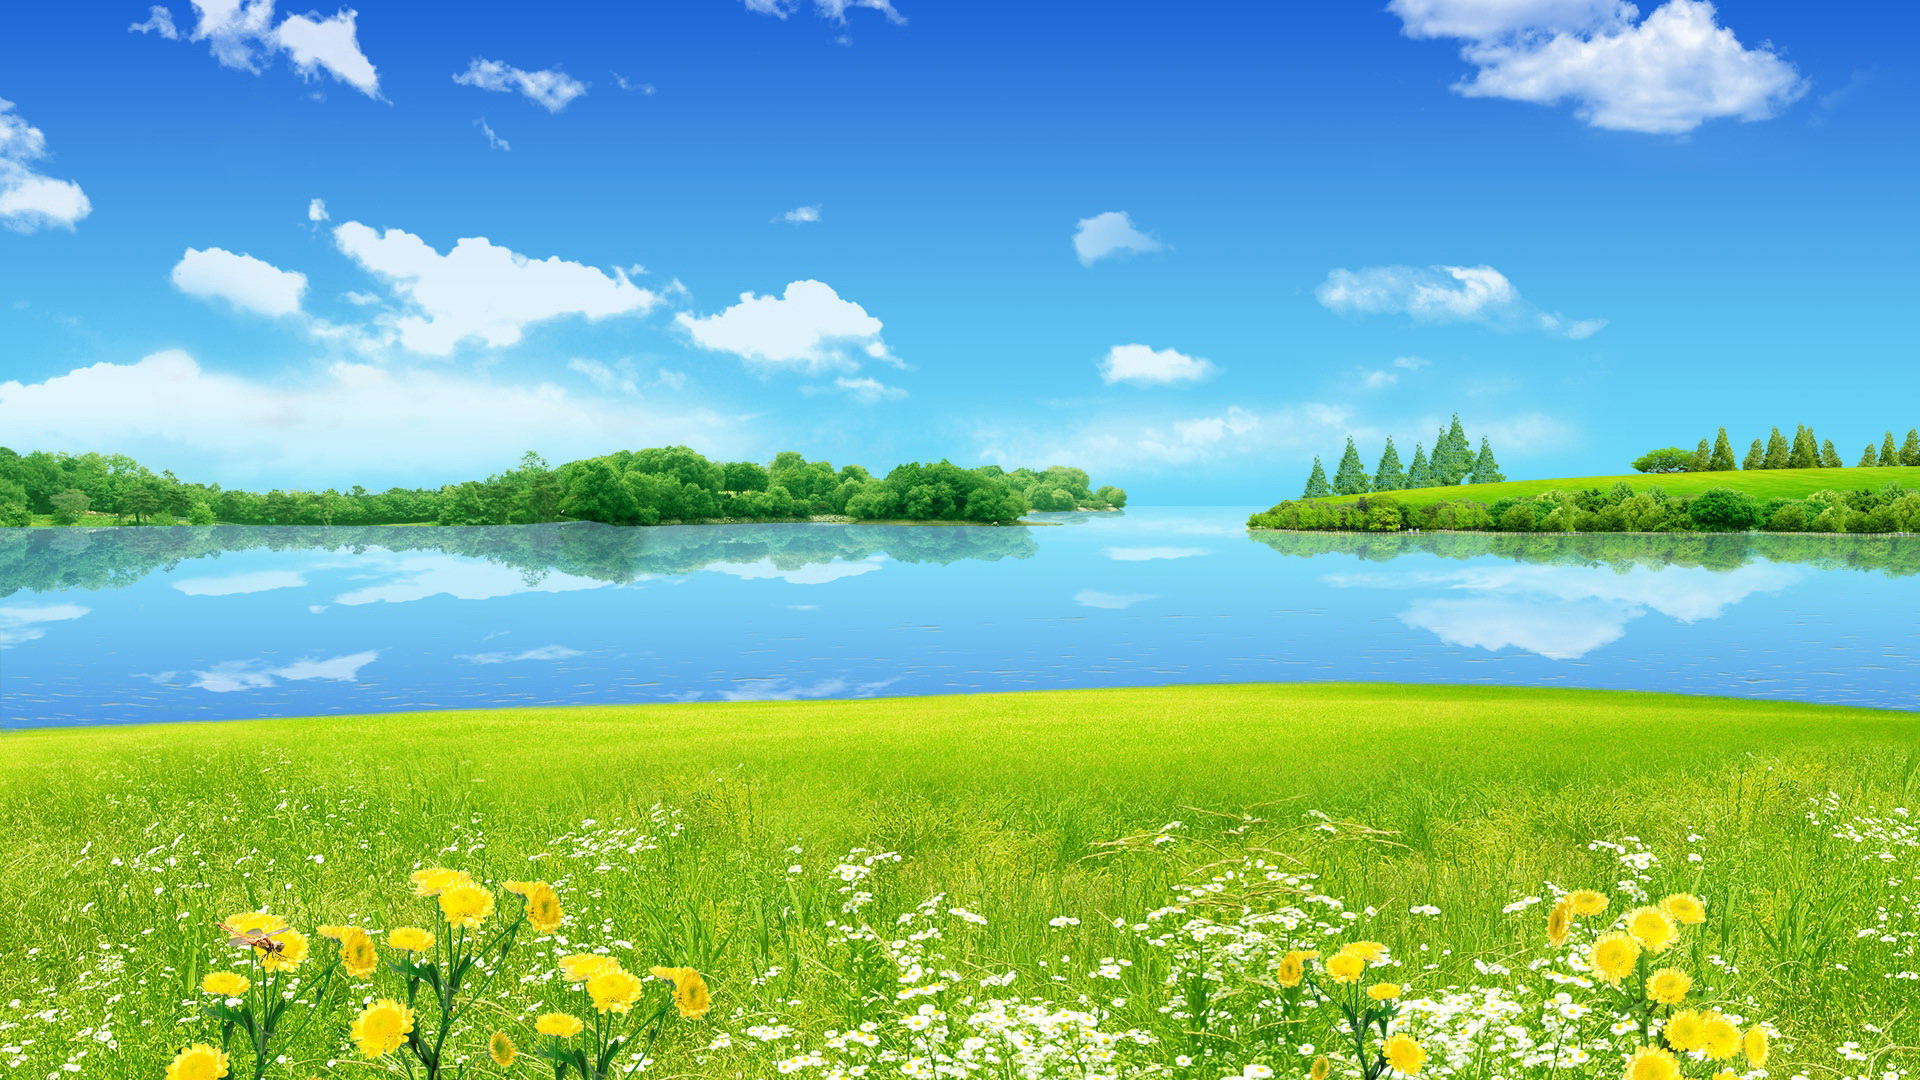 1920x1080 Sunny spring day HD Wallpaper Wallpapers Pinterest Hd wallpaper 1920×1080